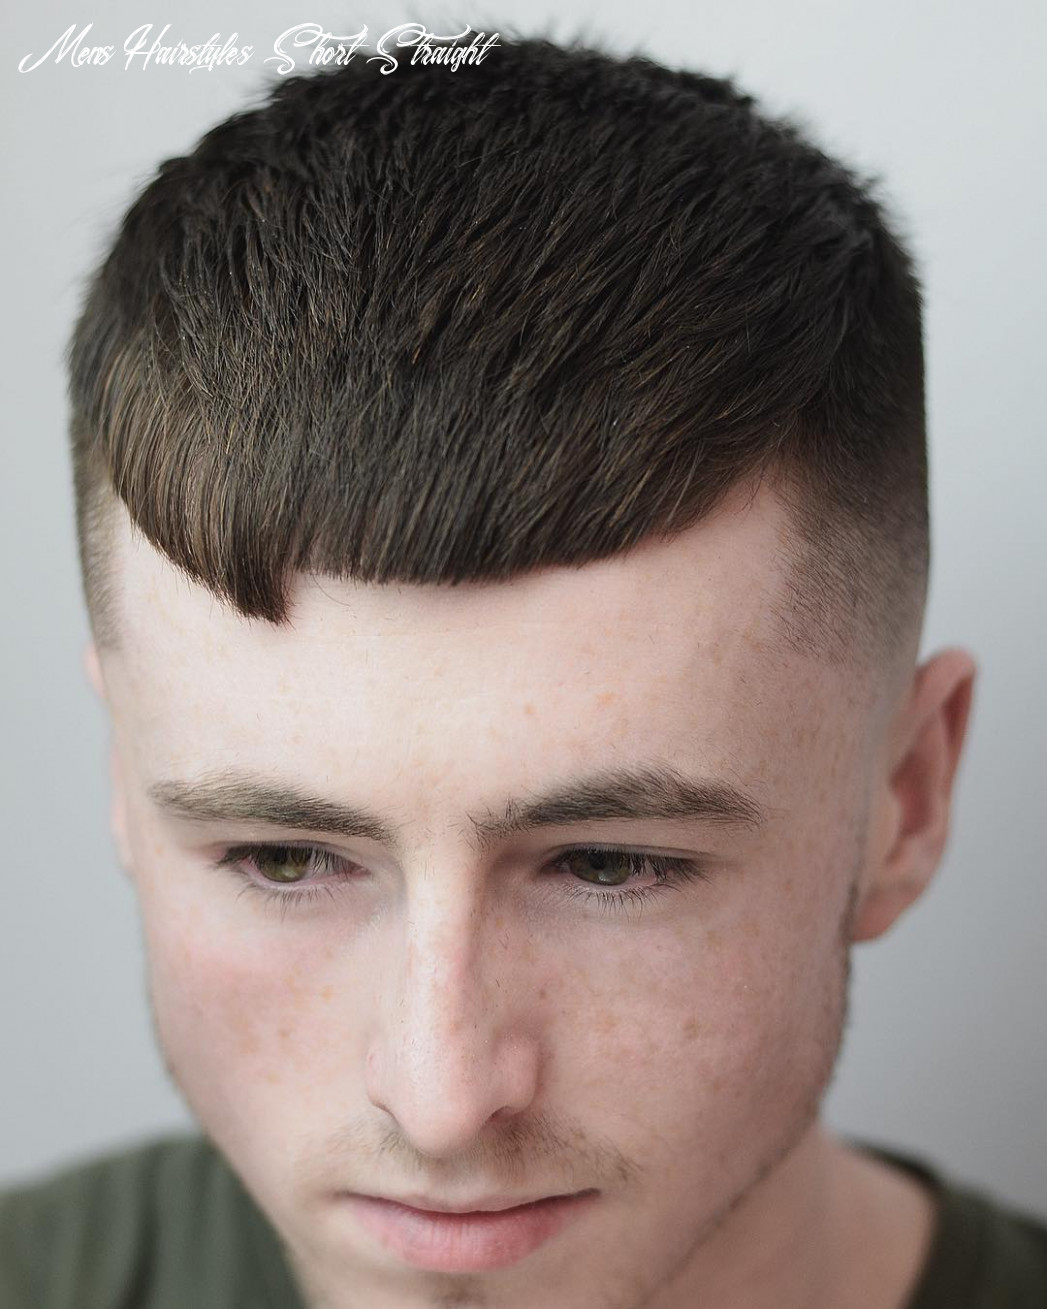 11 short haircuts for men > fresh styles for july 11 mens hairstyles short straight